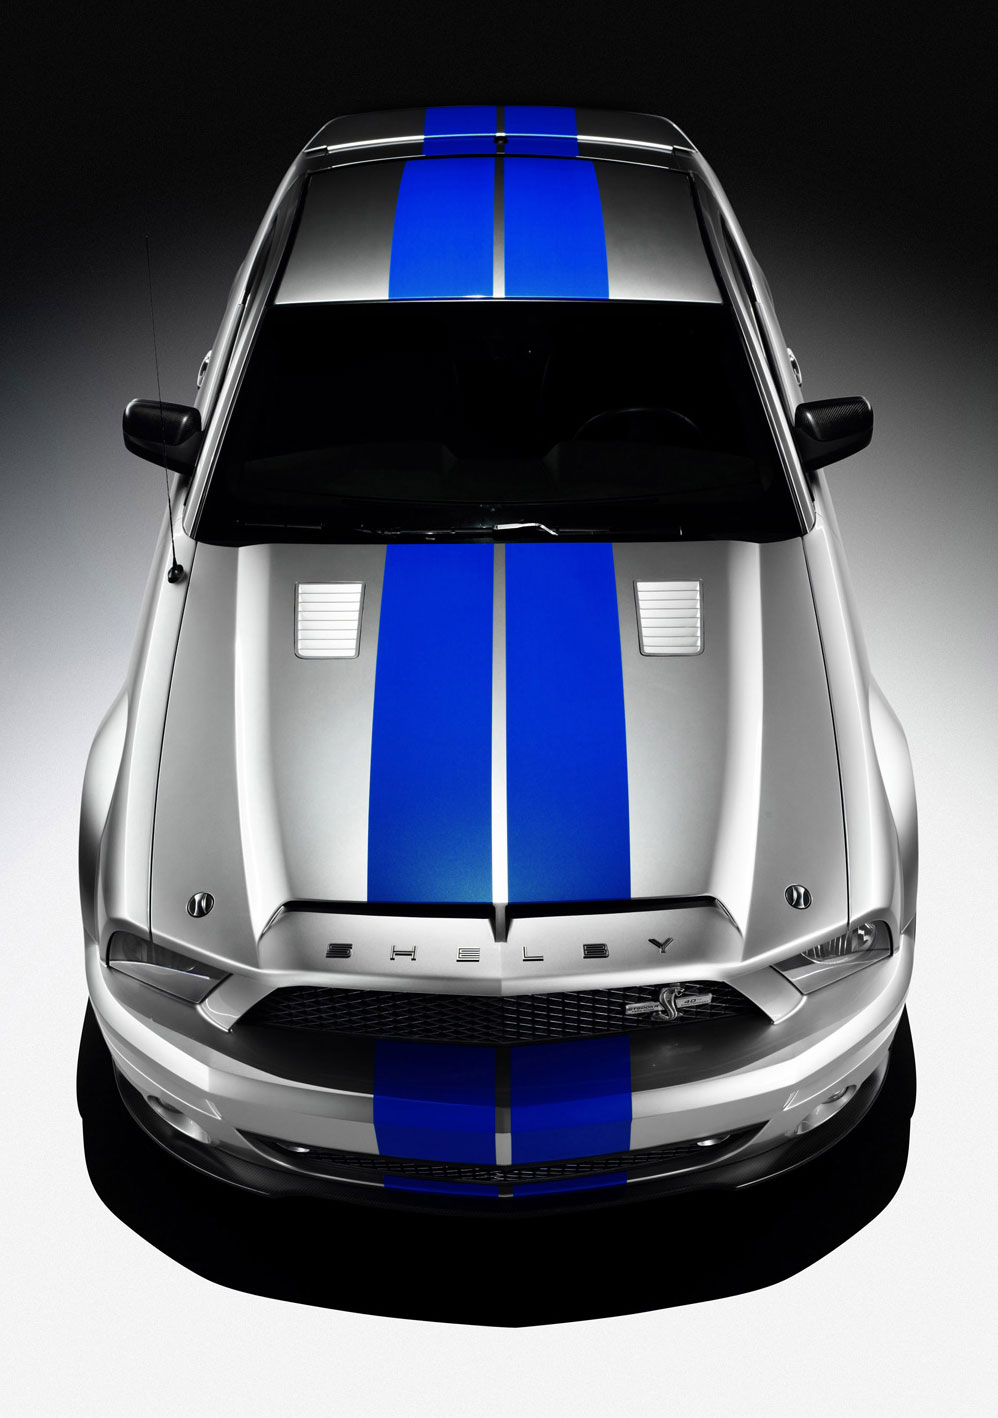 2005 Ford Escape For Sale >> Ford Mustang Shelby Cobra GT500KR : 2008 | Cartype